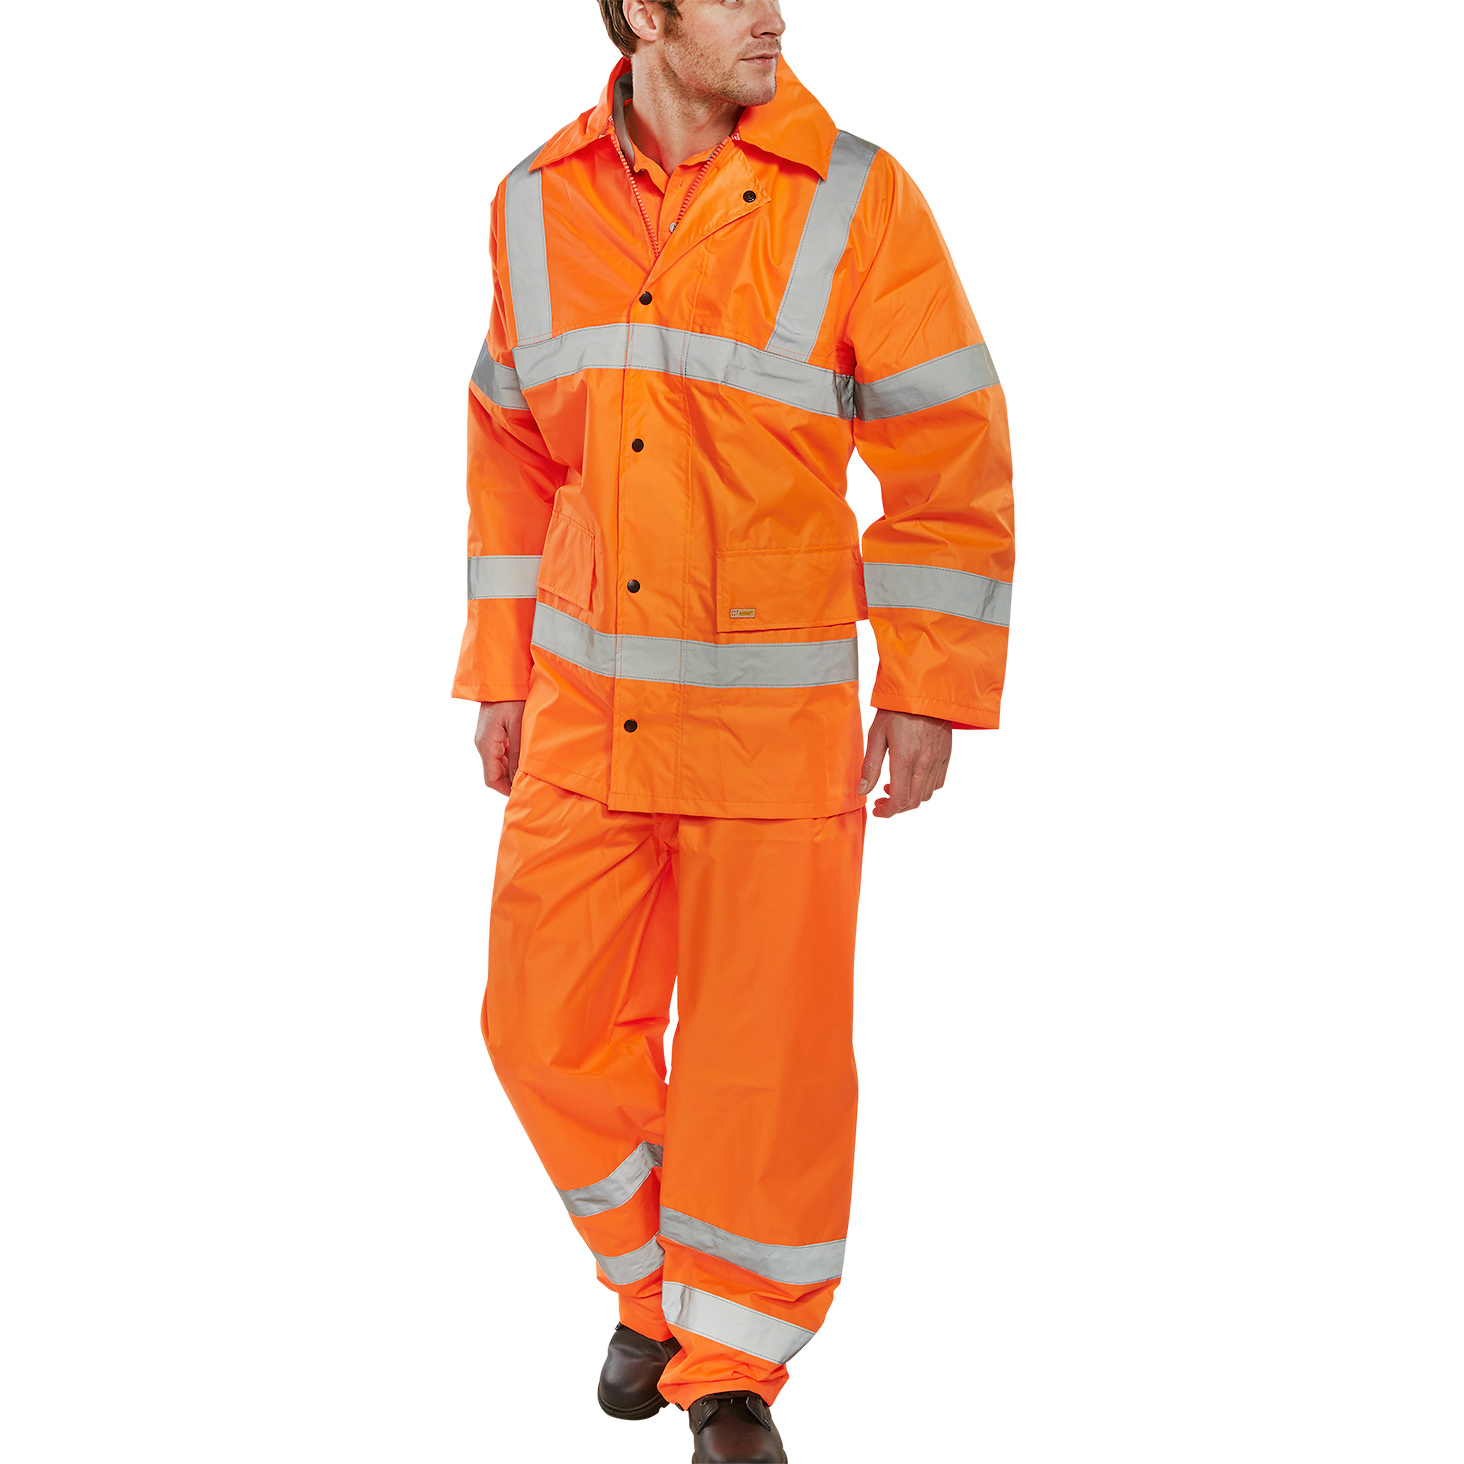 BSeen Hi-Vis L/Wt Suit Jkt/Trs EN ISO 20471 EN 343 6XL Orange Ref TS8OR6XL *Up to 3 Day Leadtime*